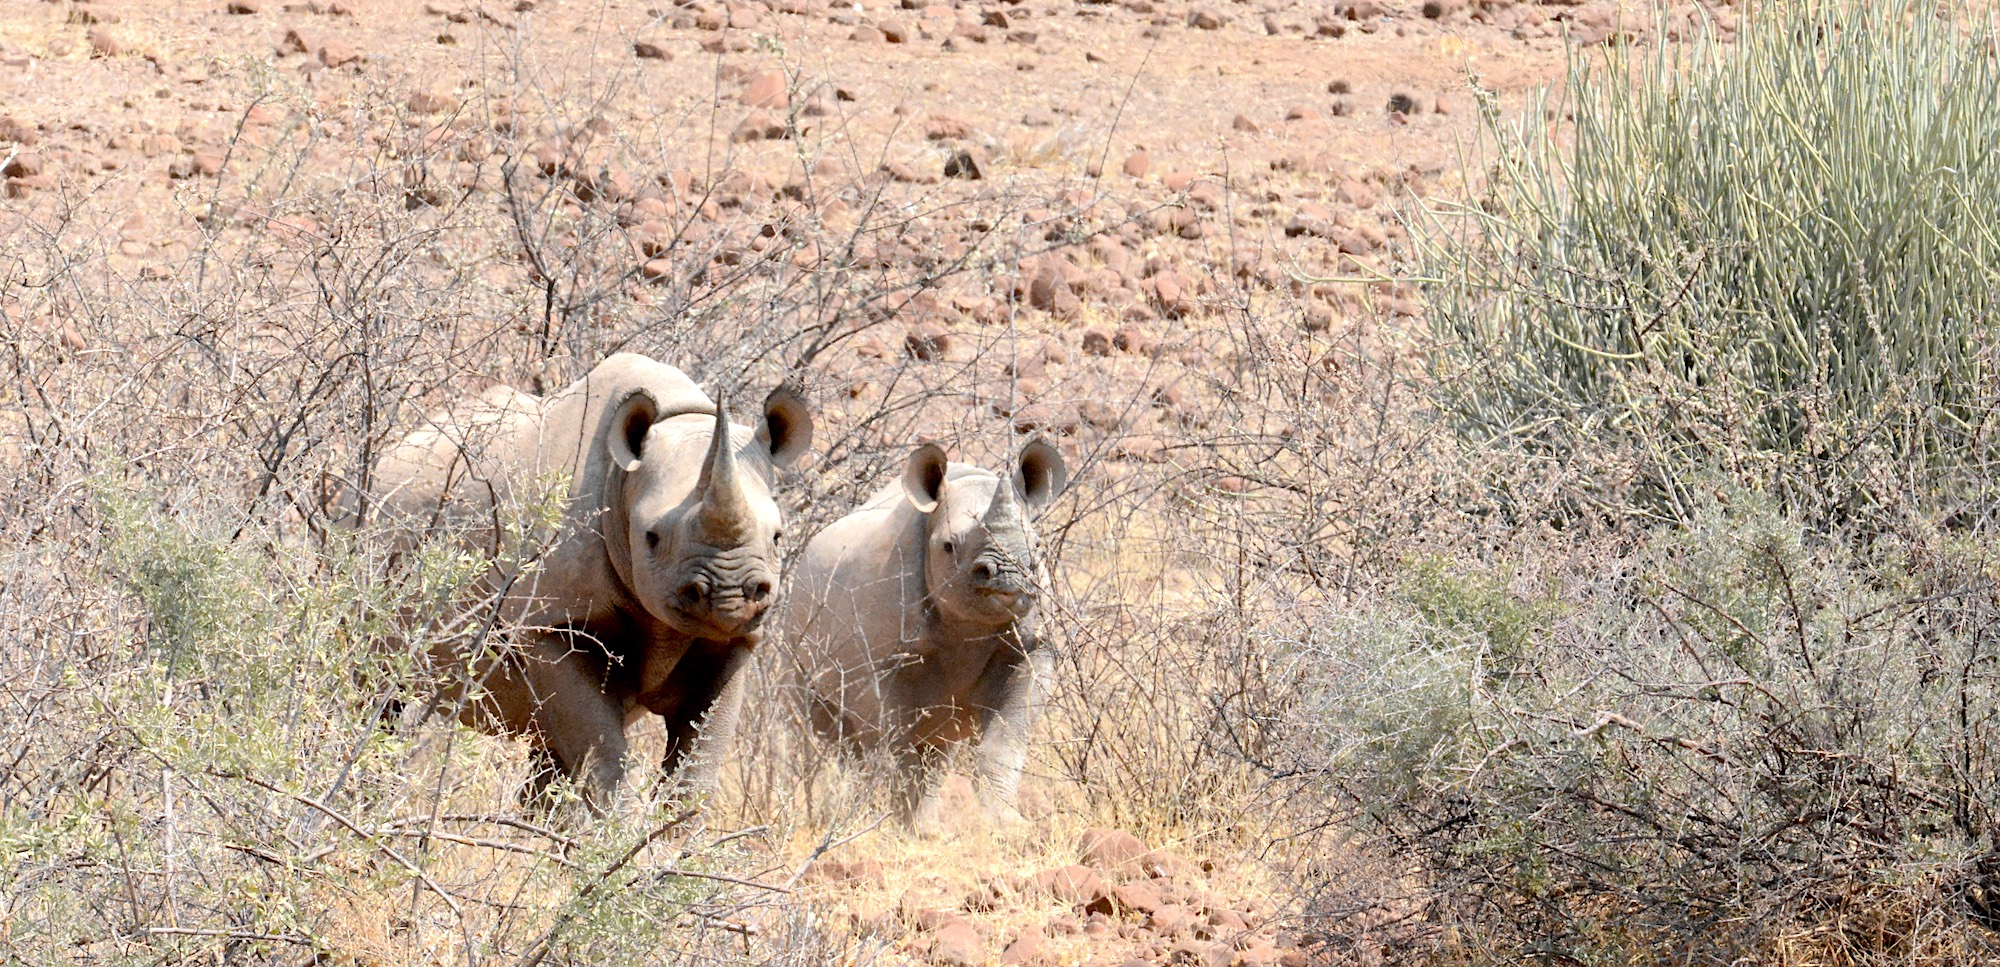 Two magnificent black rhino